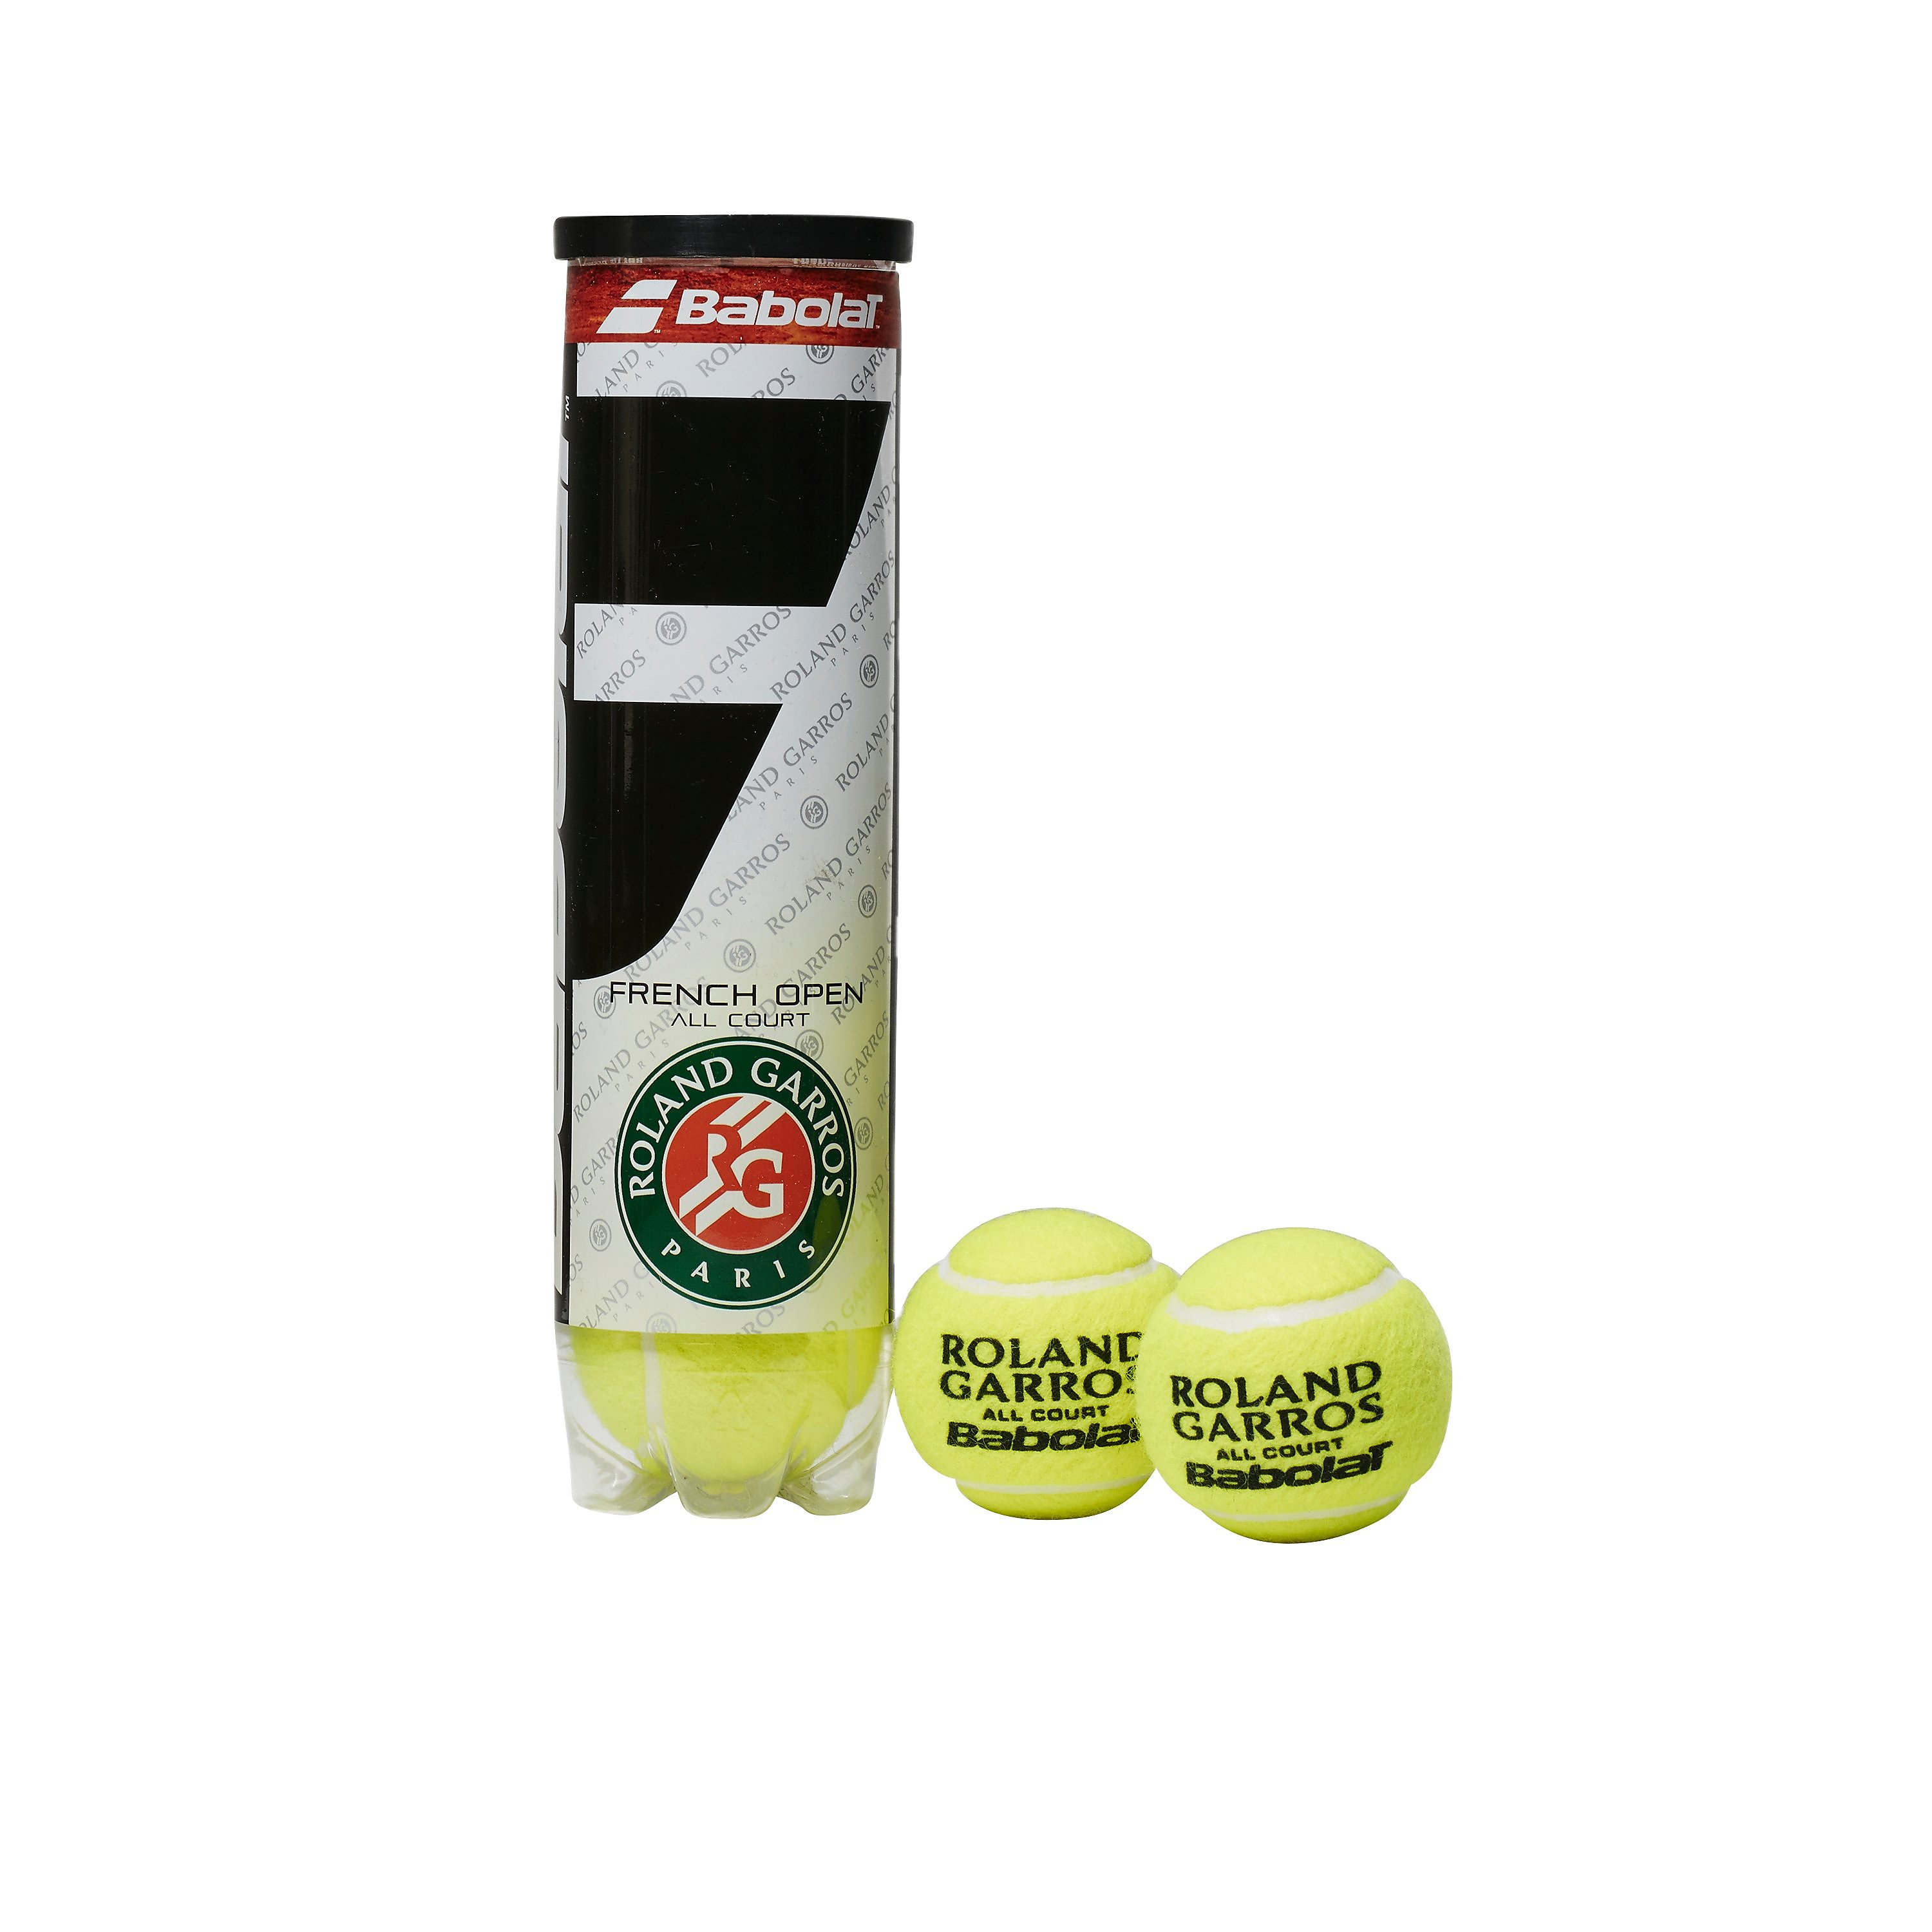 Babolat French Open All Court (4 Pack) Tennis Balls